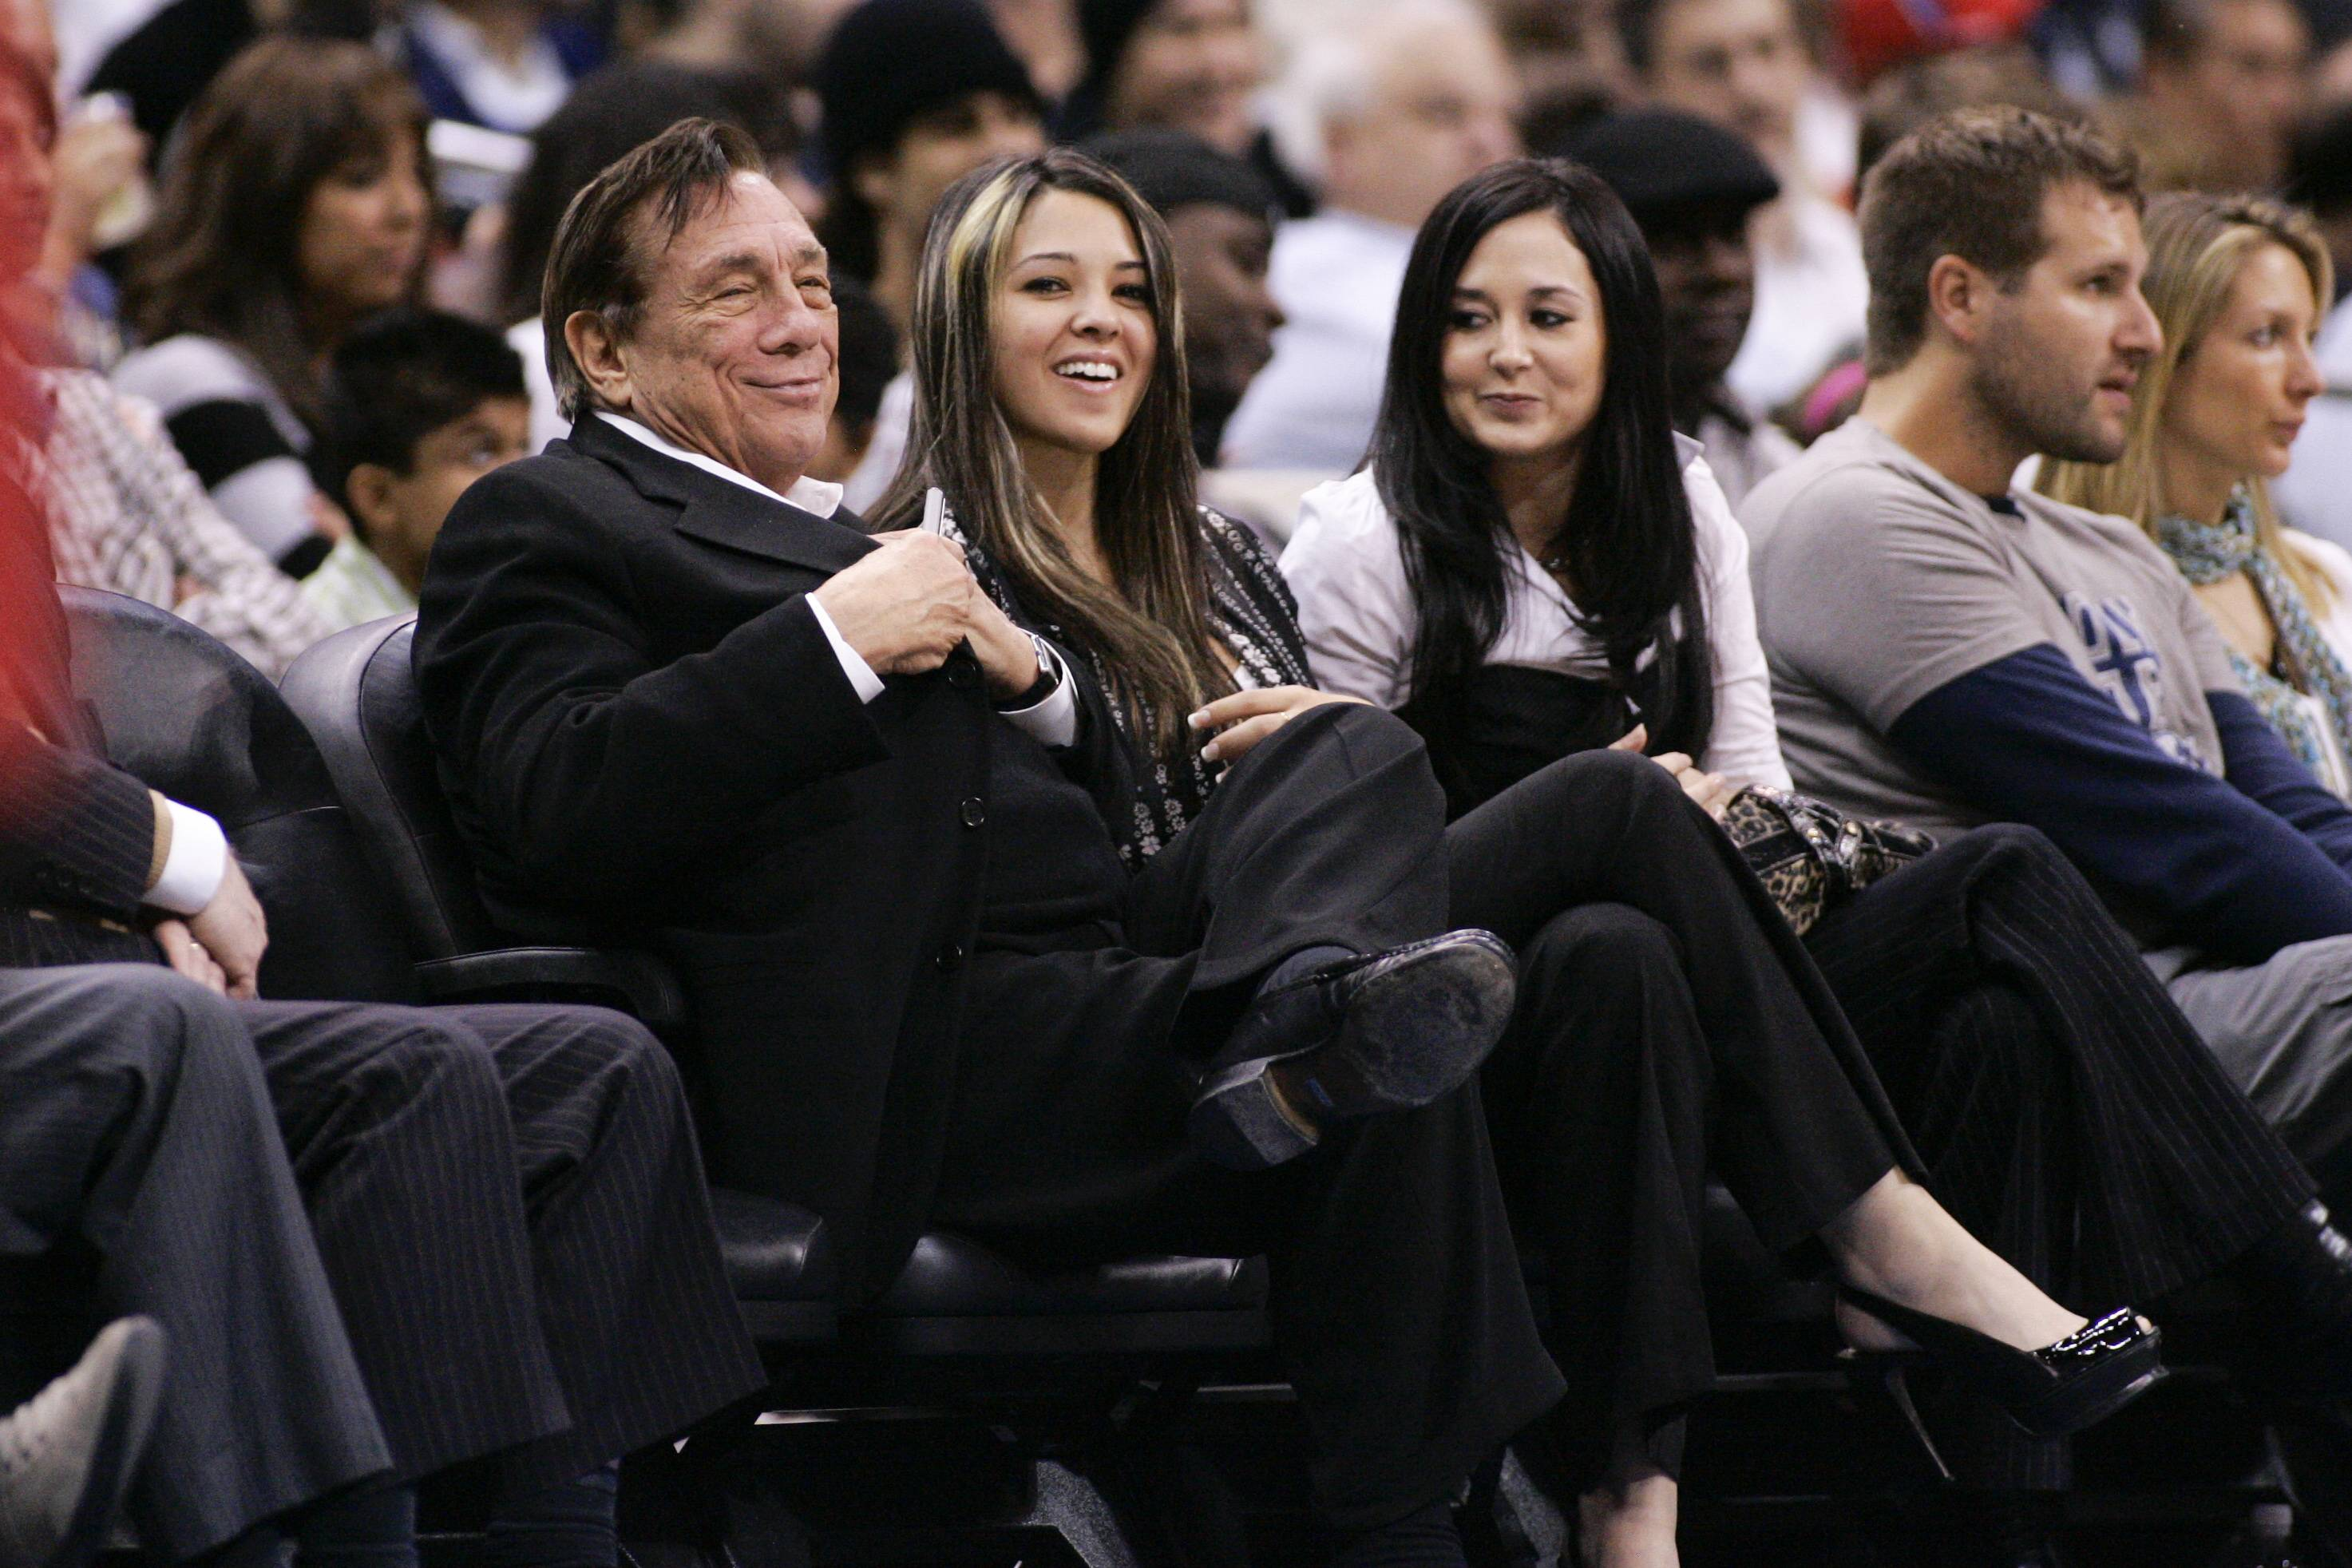 Clippers' Donald Sterling has long history of trouble